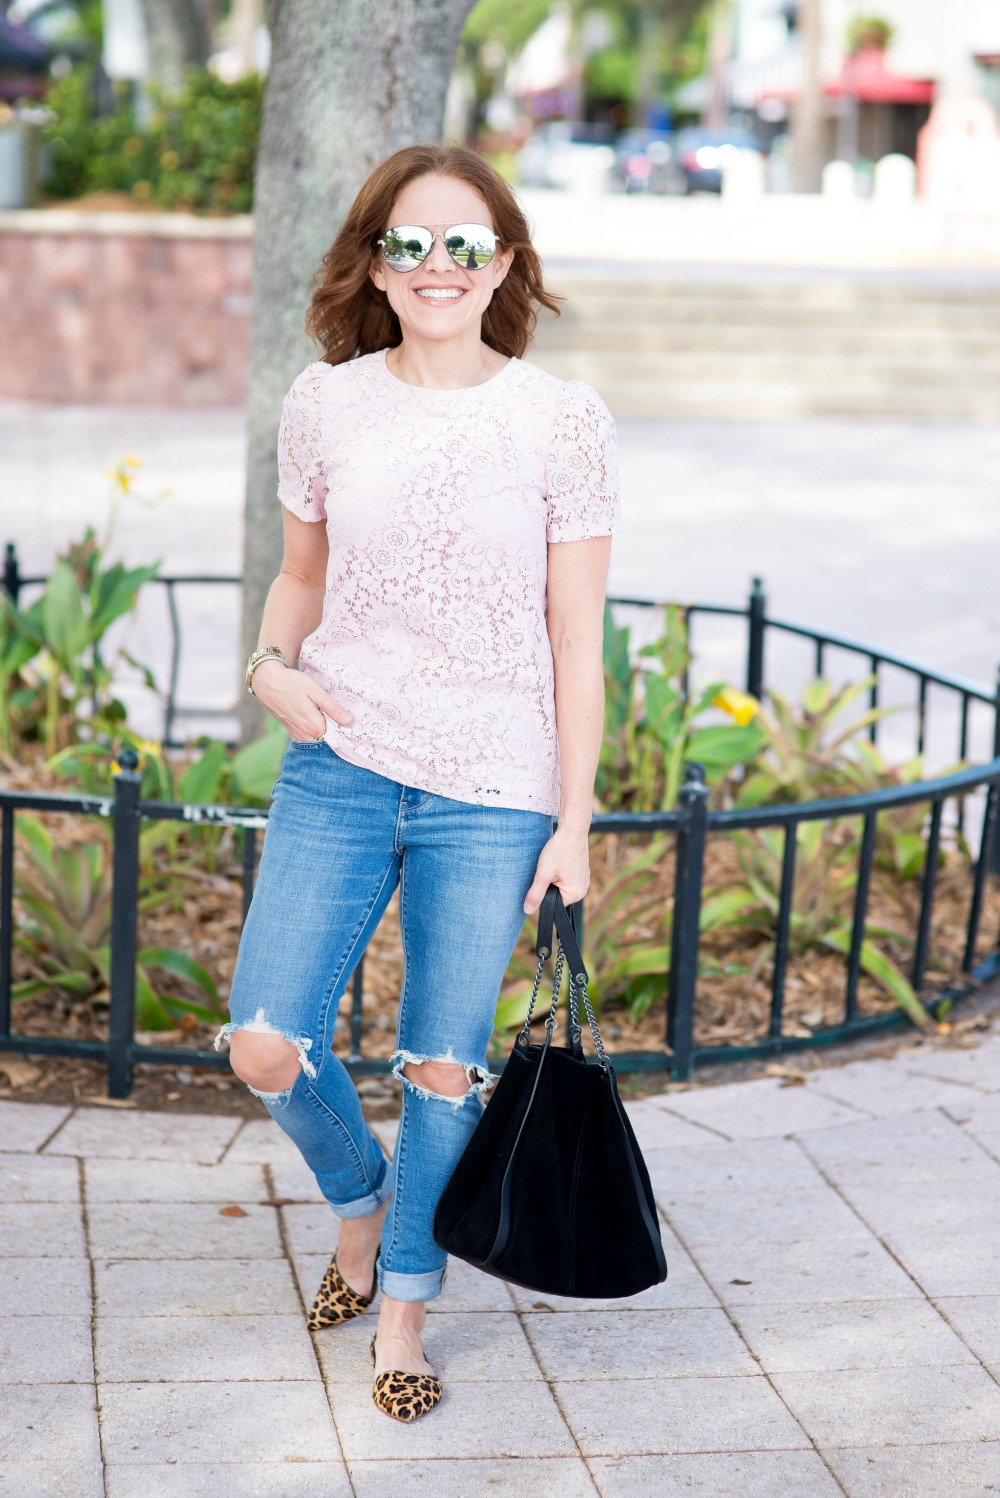 Easy fall outfit (especially when it's still warm out!)